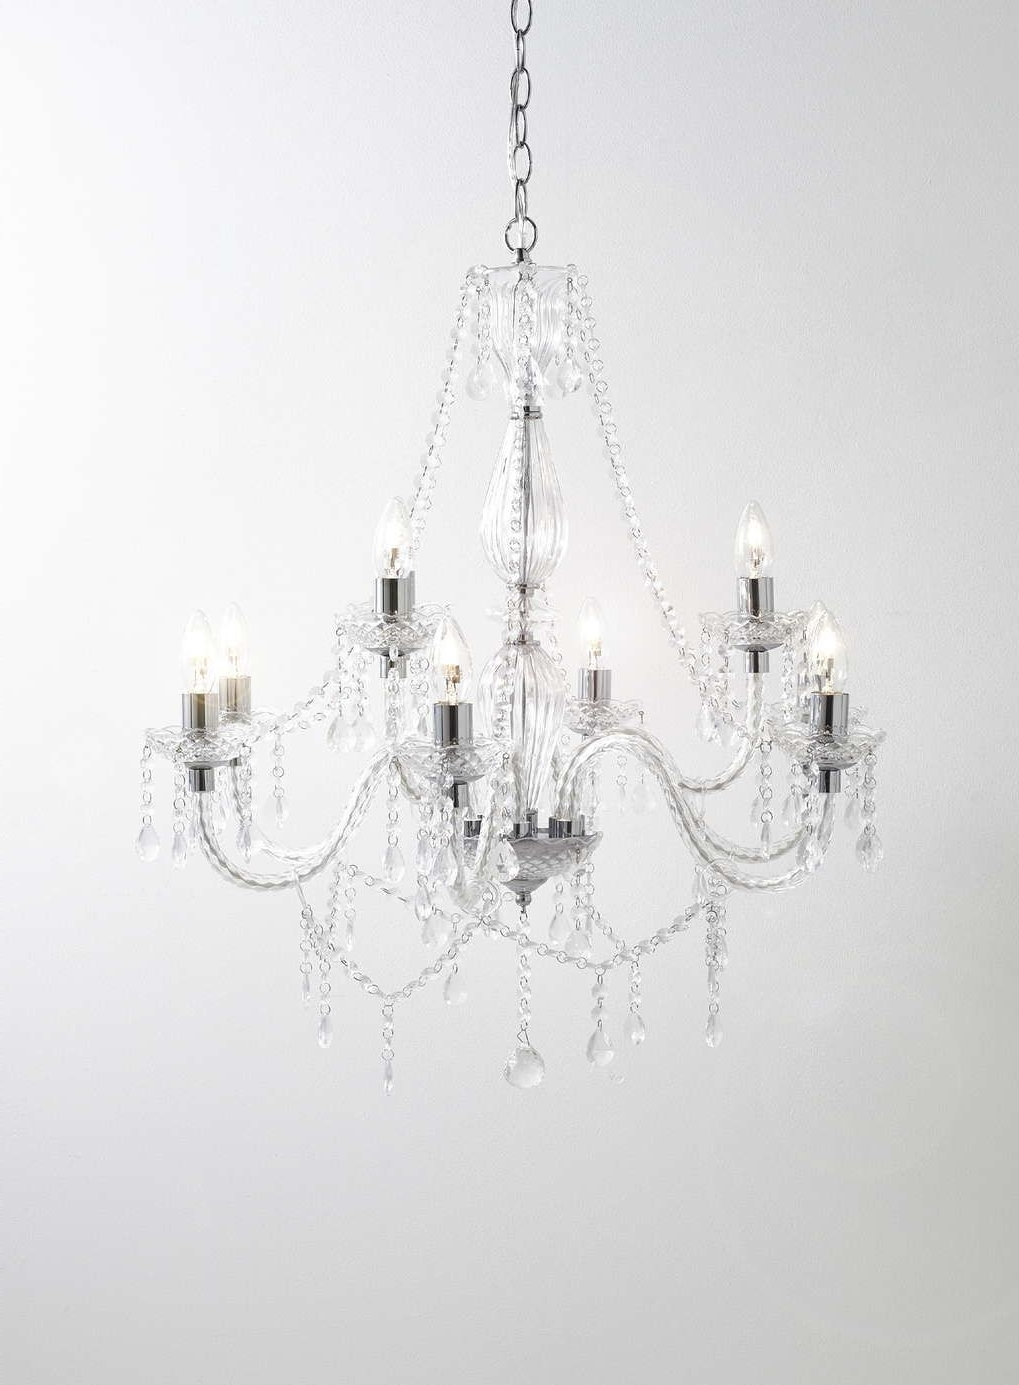 Chrome Bryony 9 Light Chandelier – Bhs Bedroom Lighting, Living Room Intended For Most Up To Date Chrome And Glass Chandeliers (View 9 of 20)